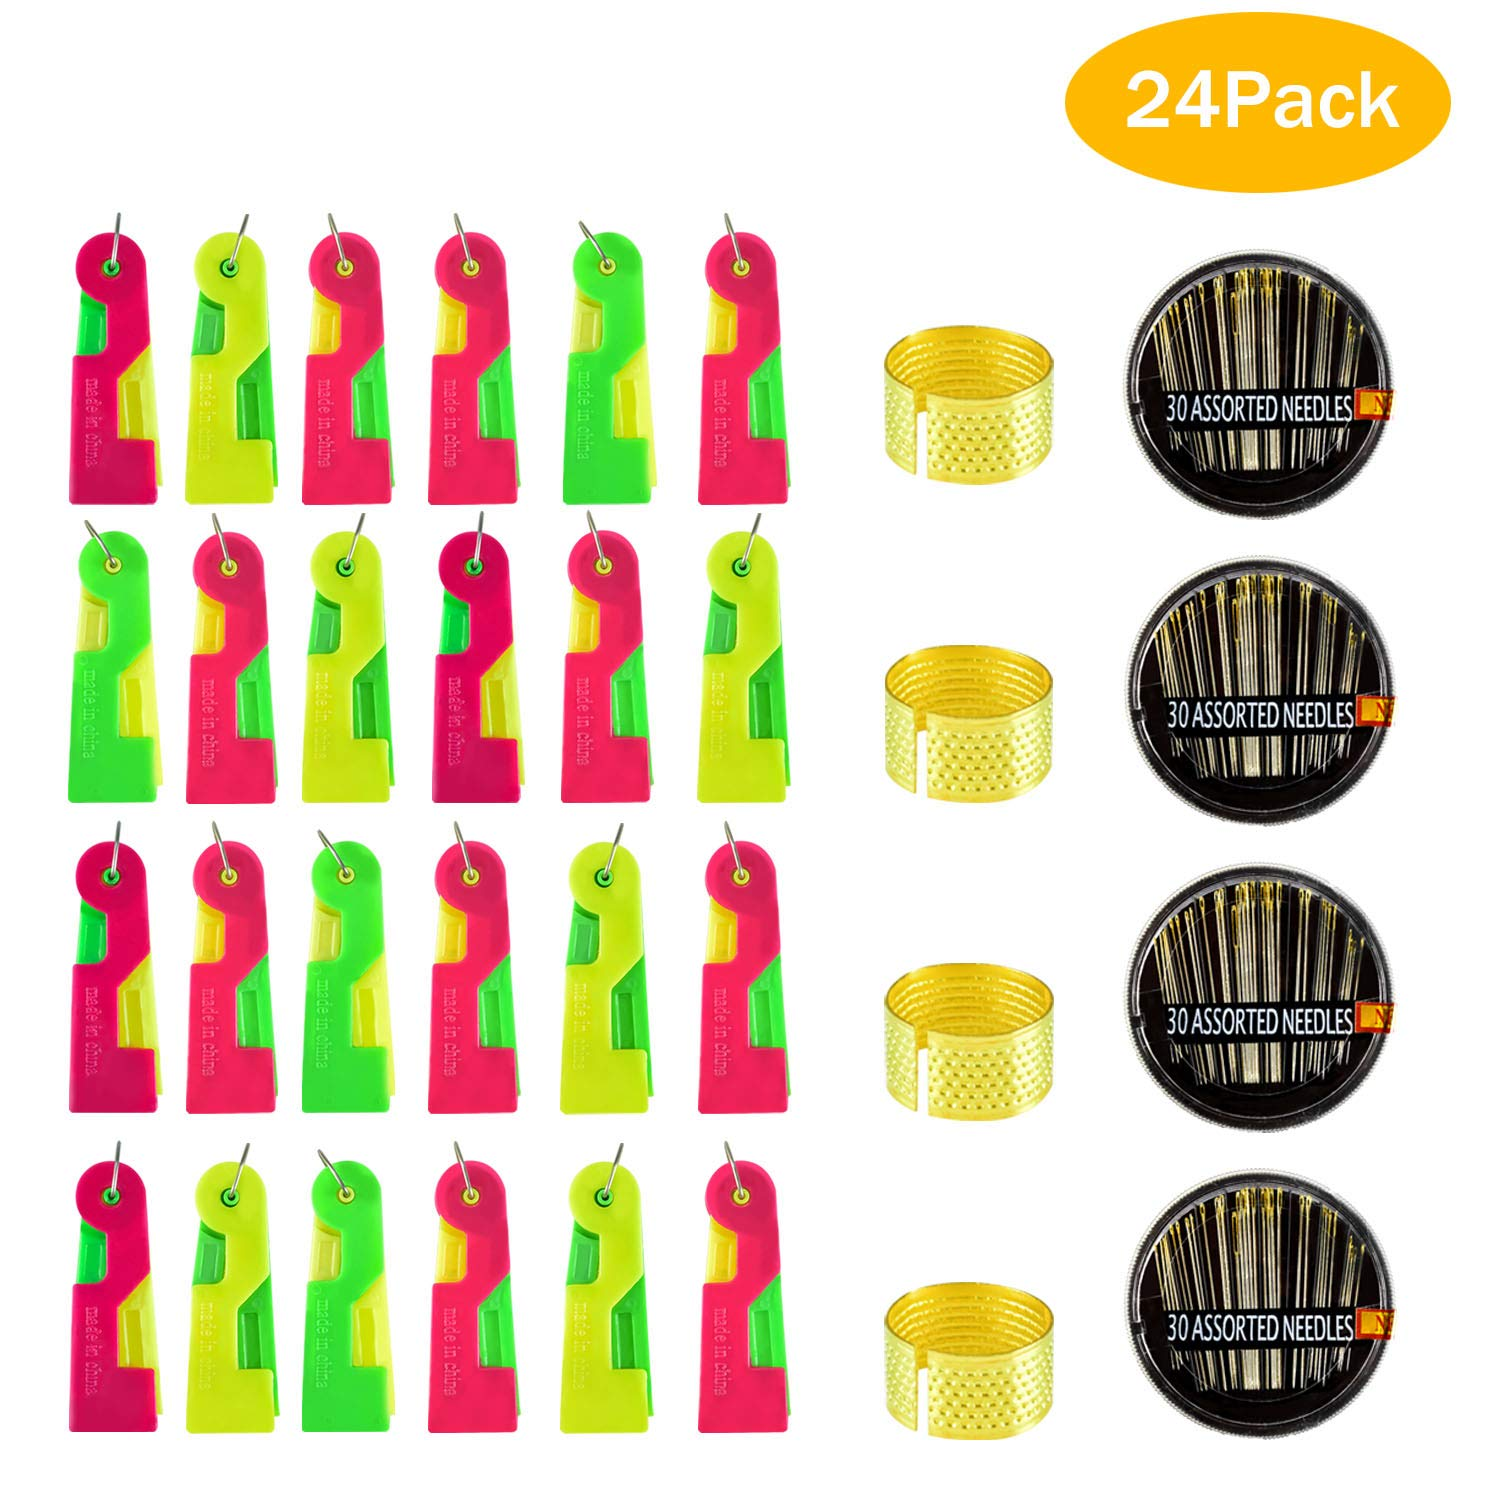 Solve Frustrating Needle Threading Problem 24Pack Random Color Fit for Kids Young and Elder Easy Use /& Carry Automatic Needle Threading Device,Self Threader for Hand Stitching and Sewing Machine